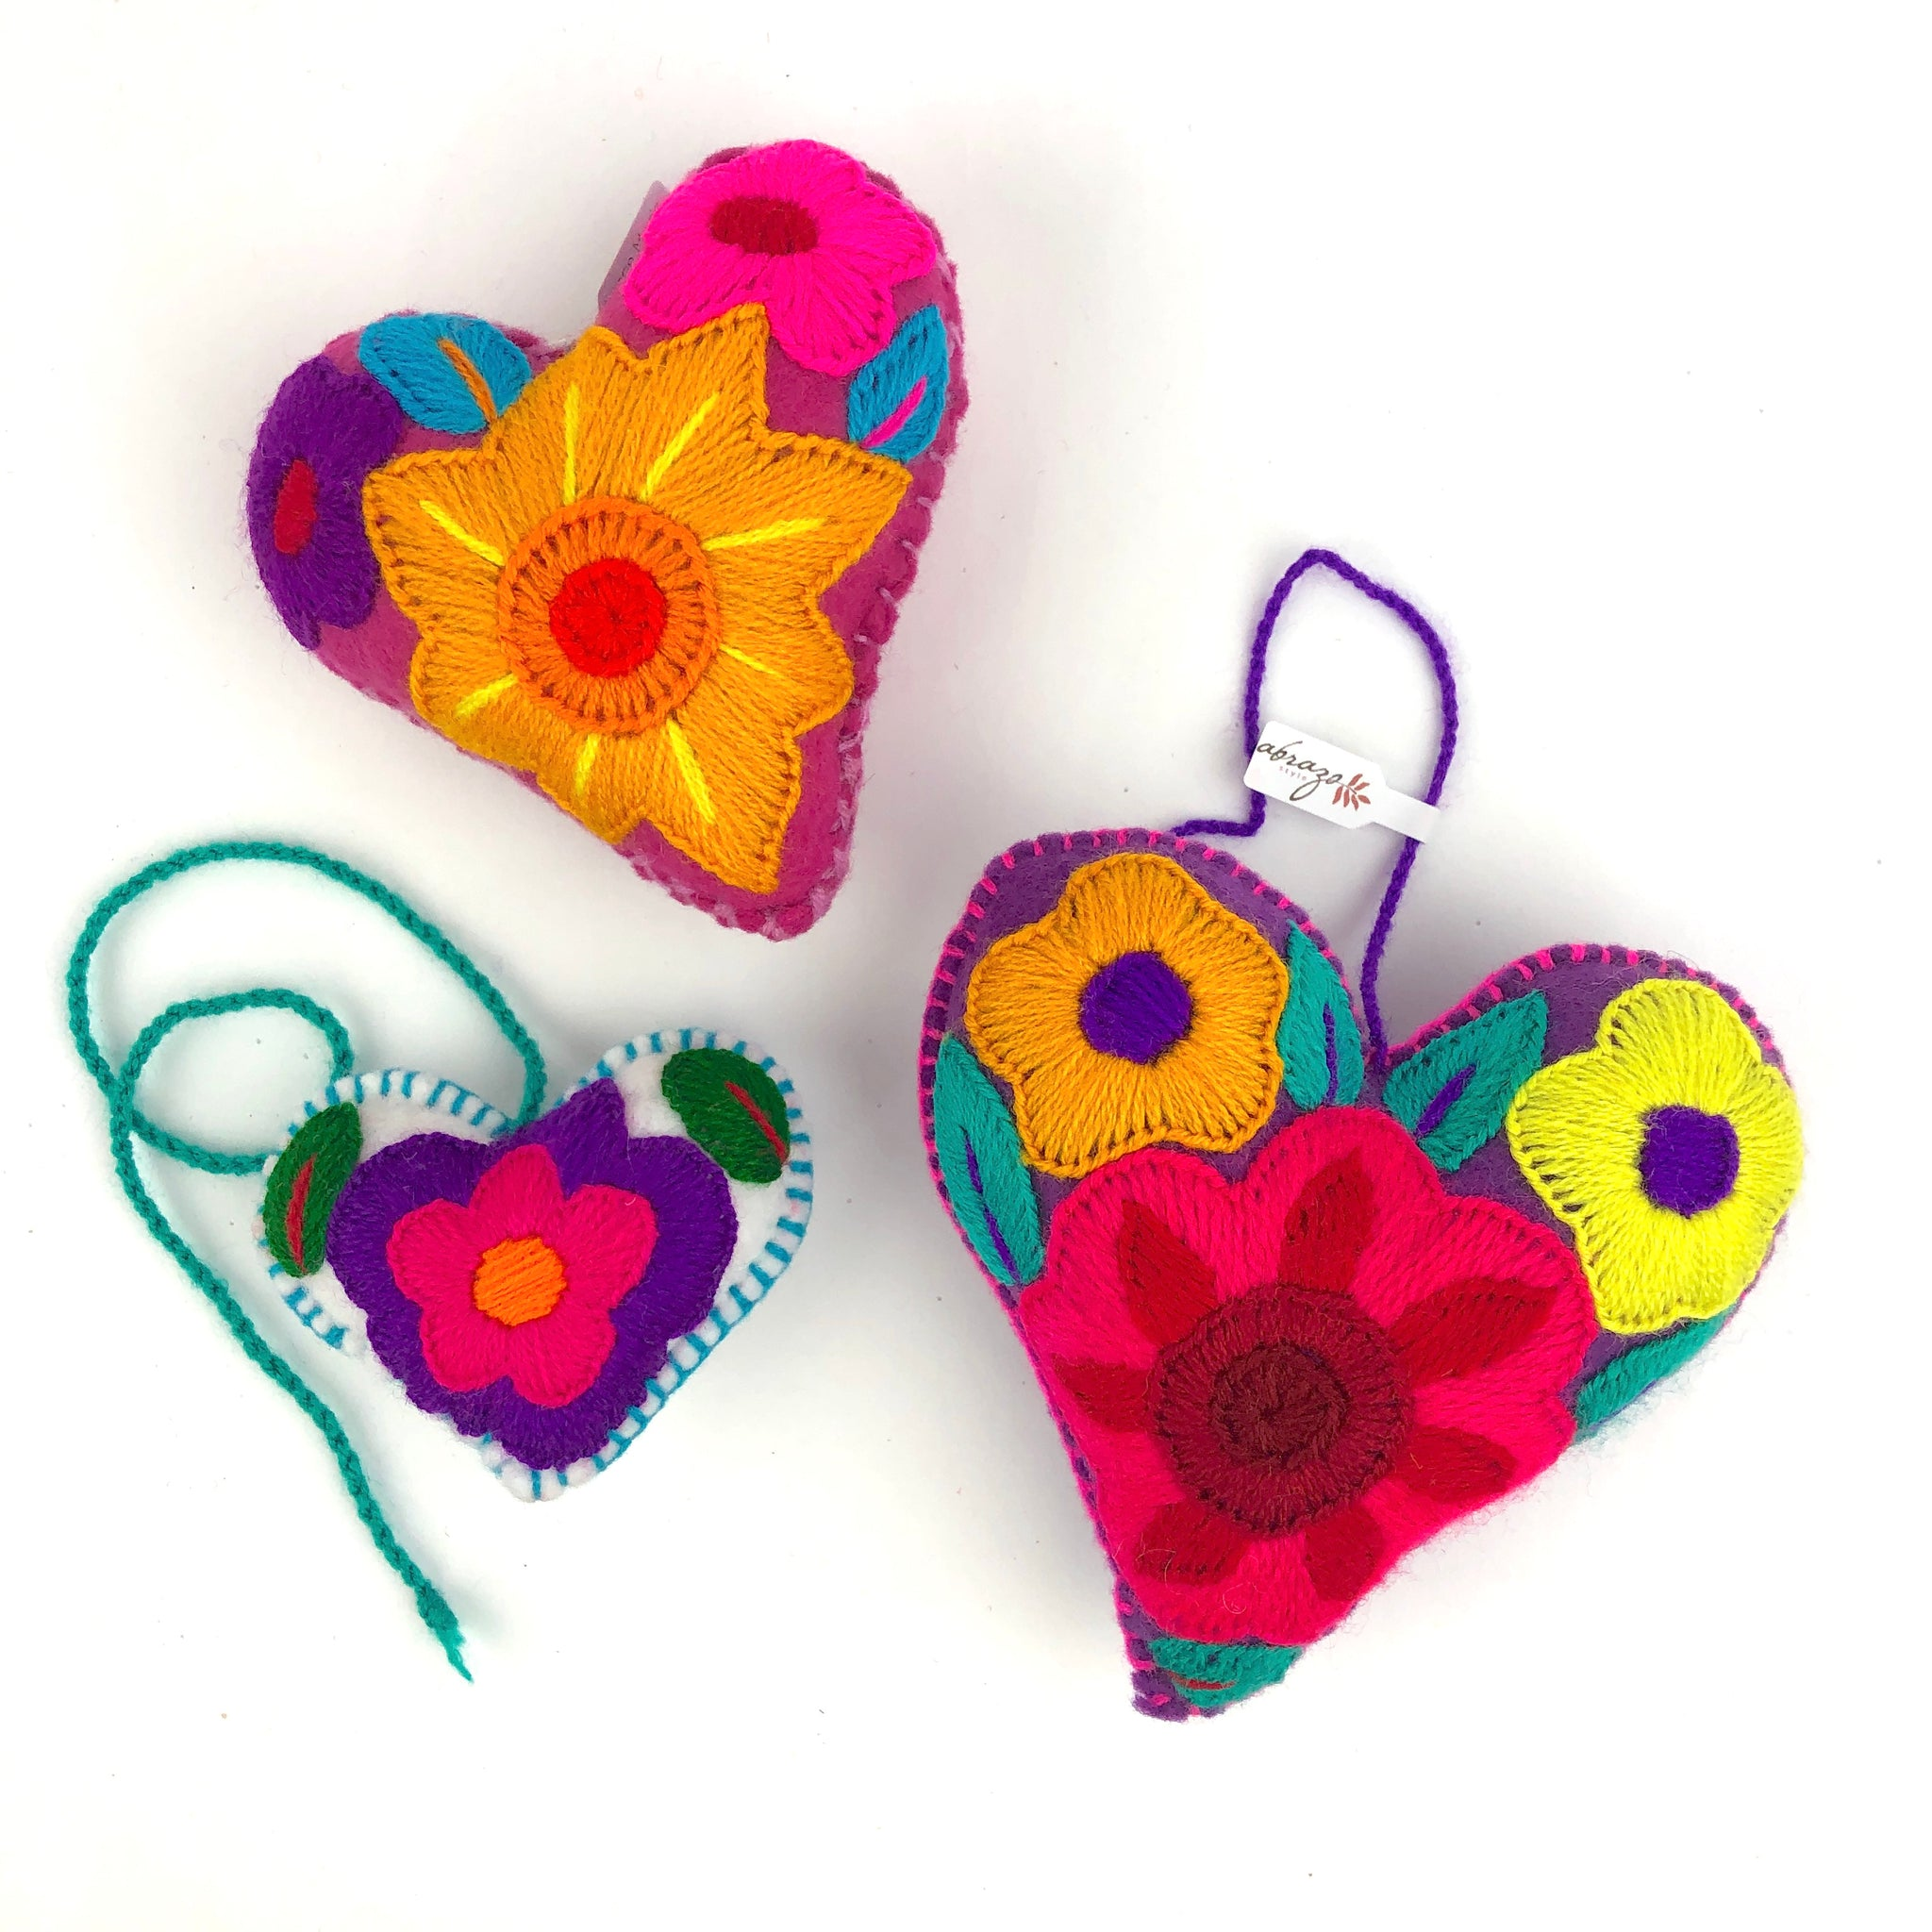 Embroidered heart, Mexican heart, felt heart, fair trade heart